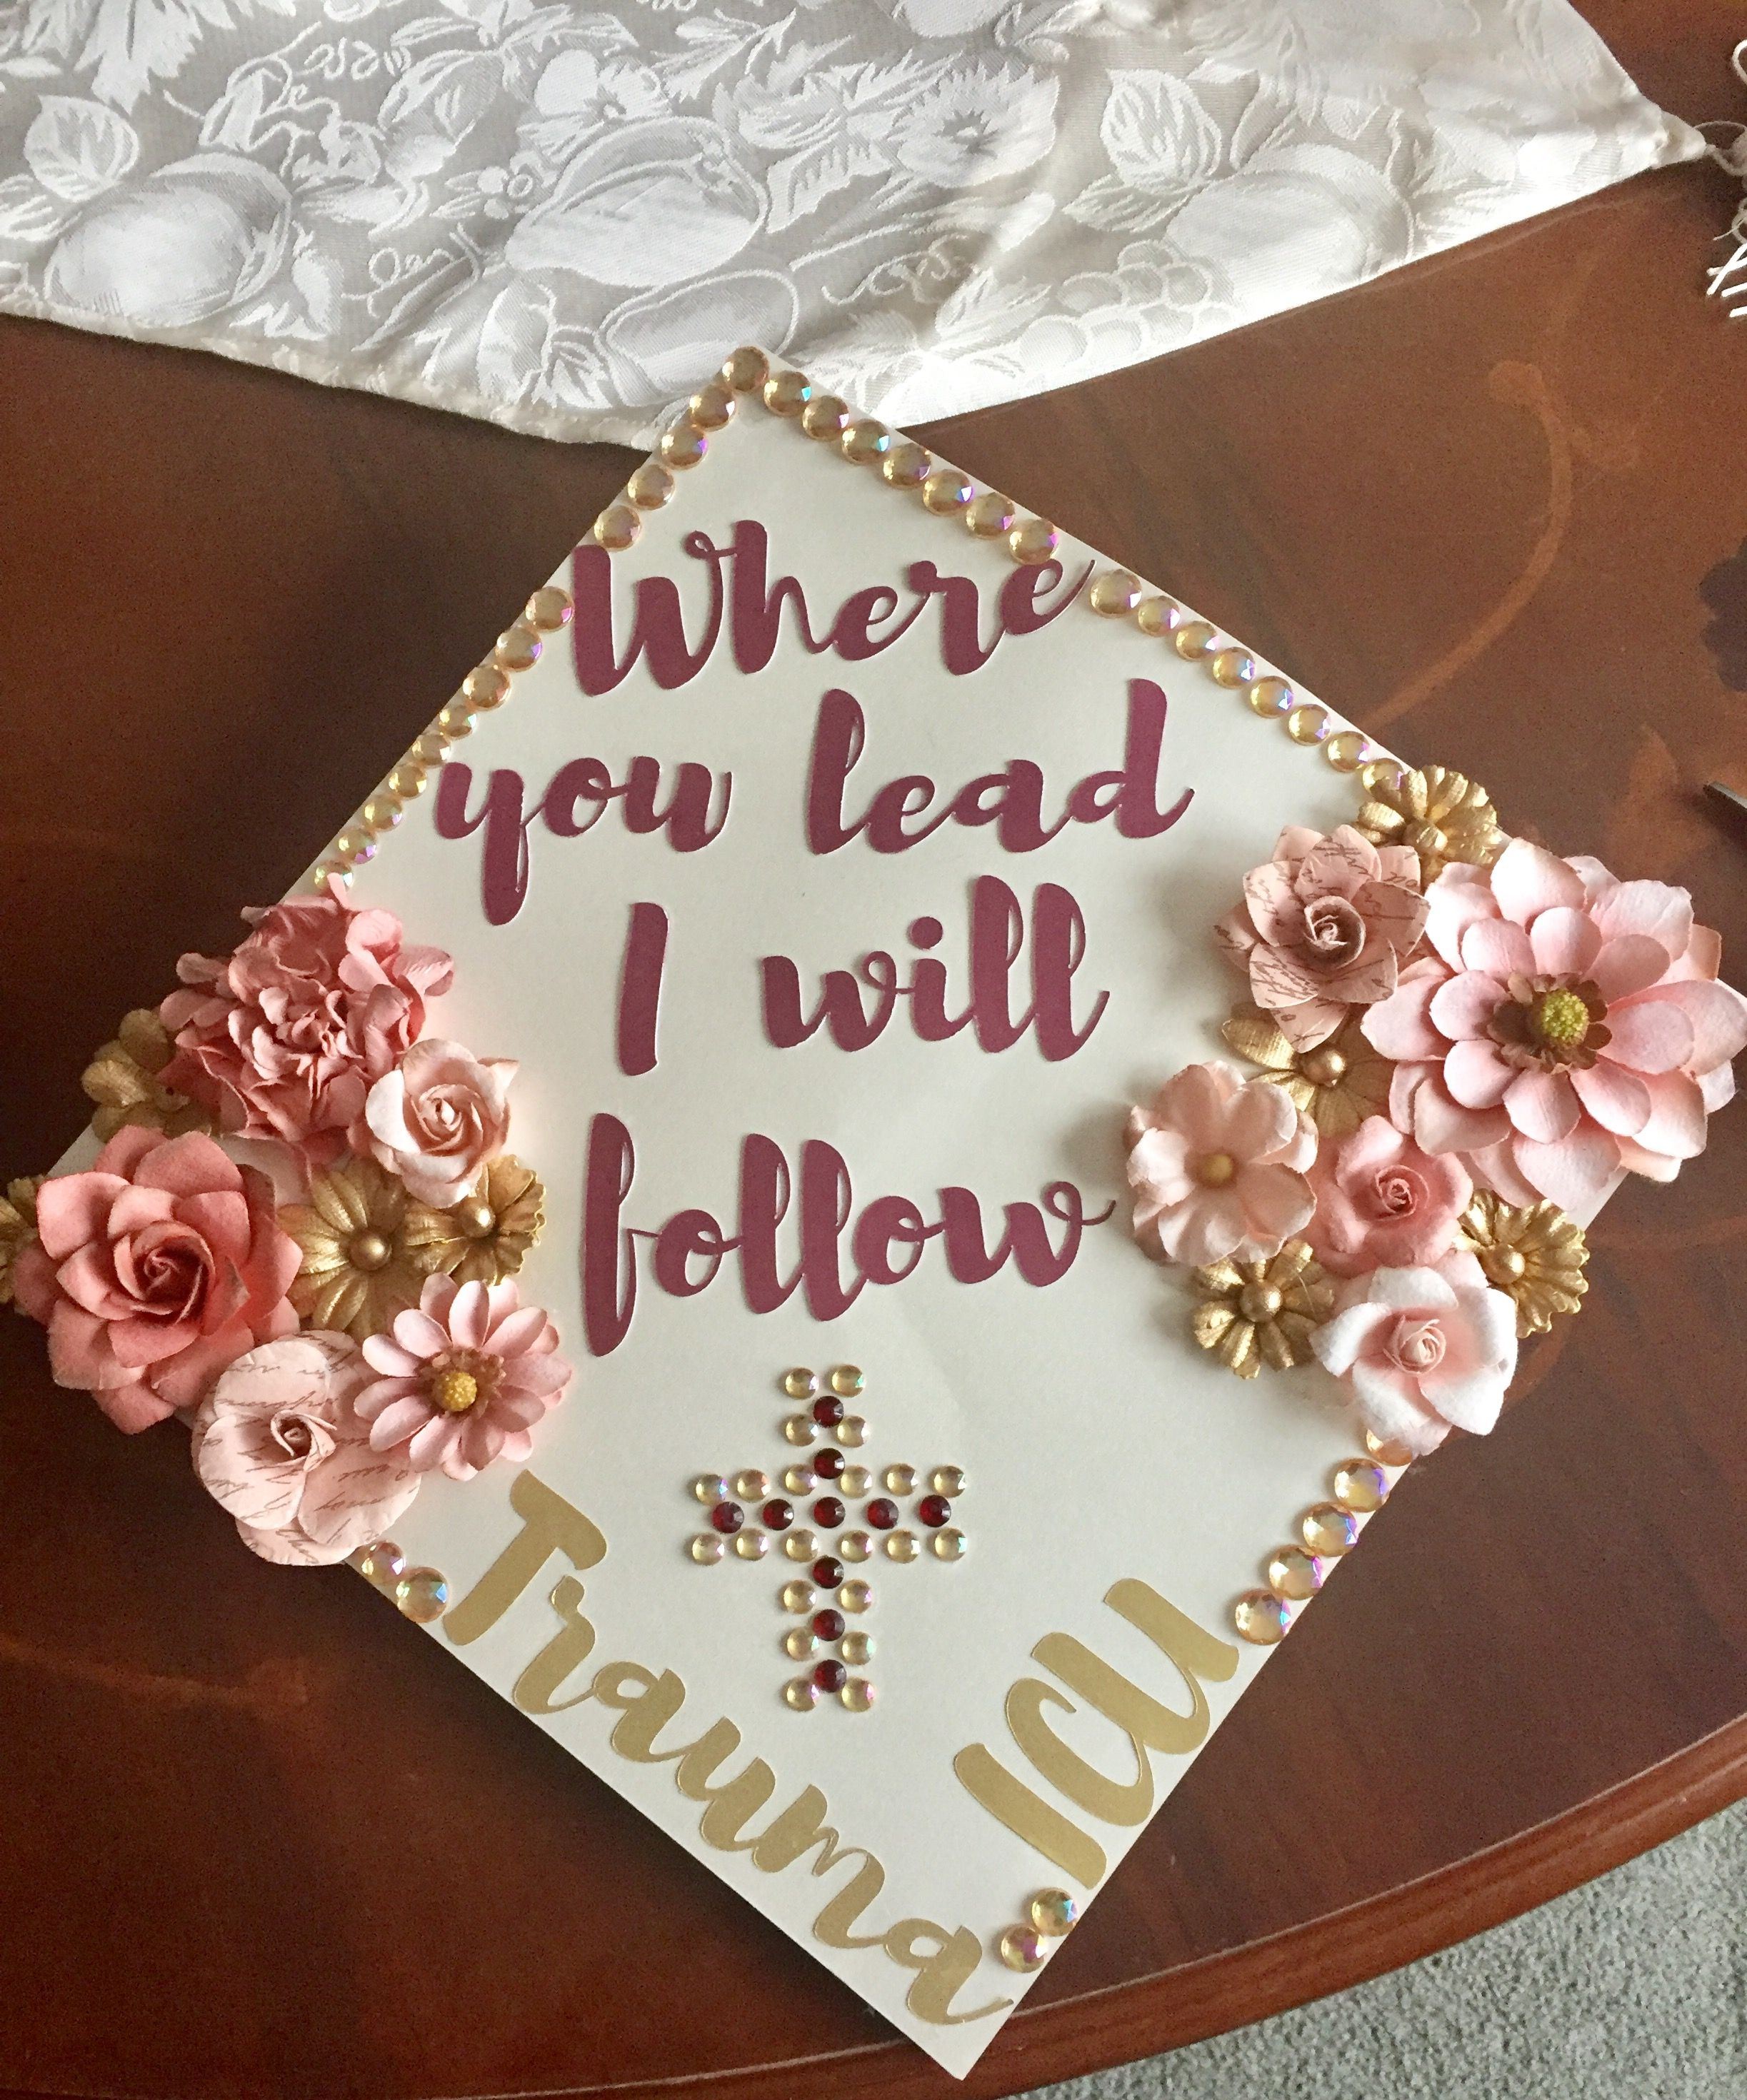 Nursing school graduation caps | Nursing Cap Collection ...